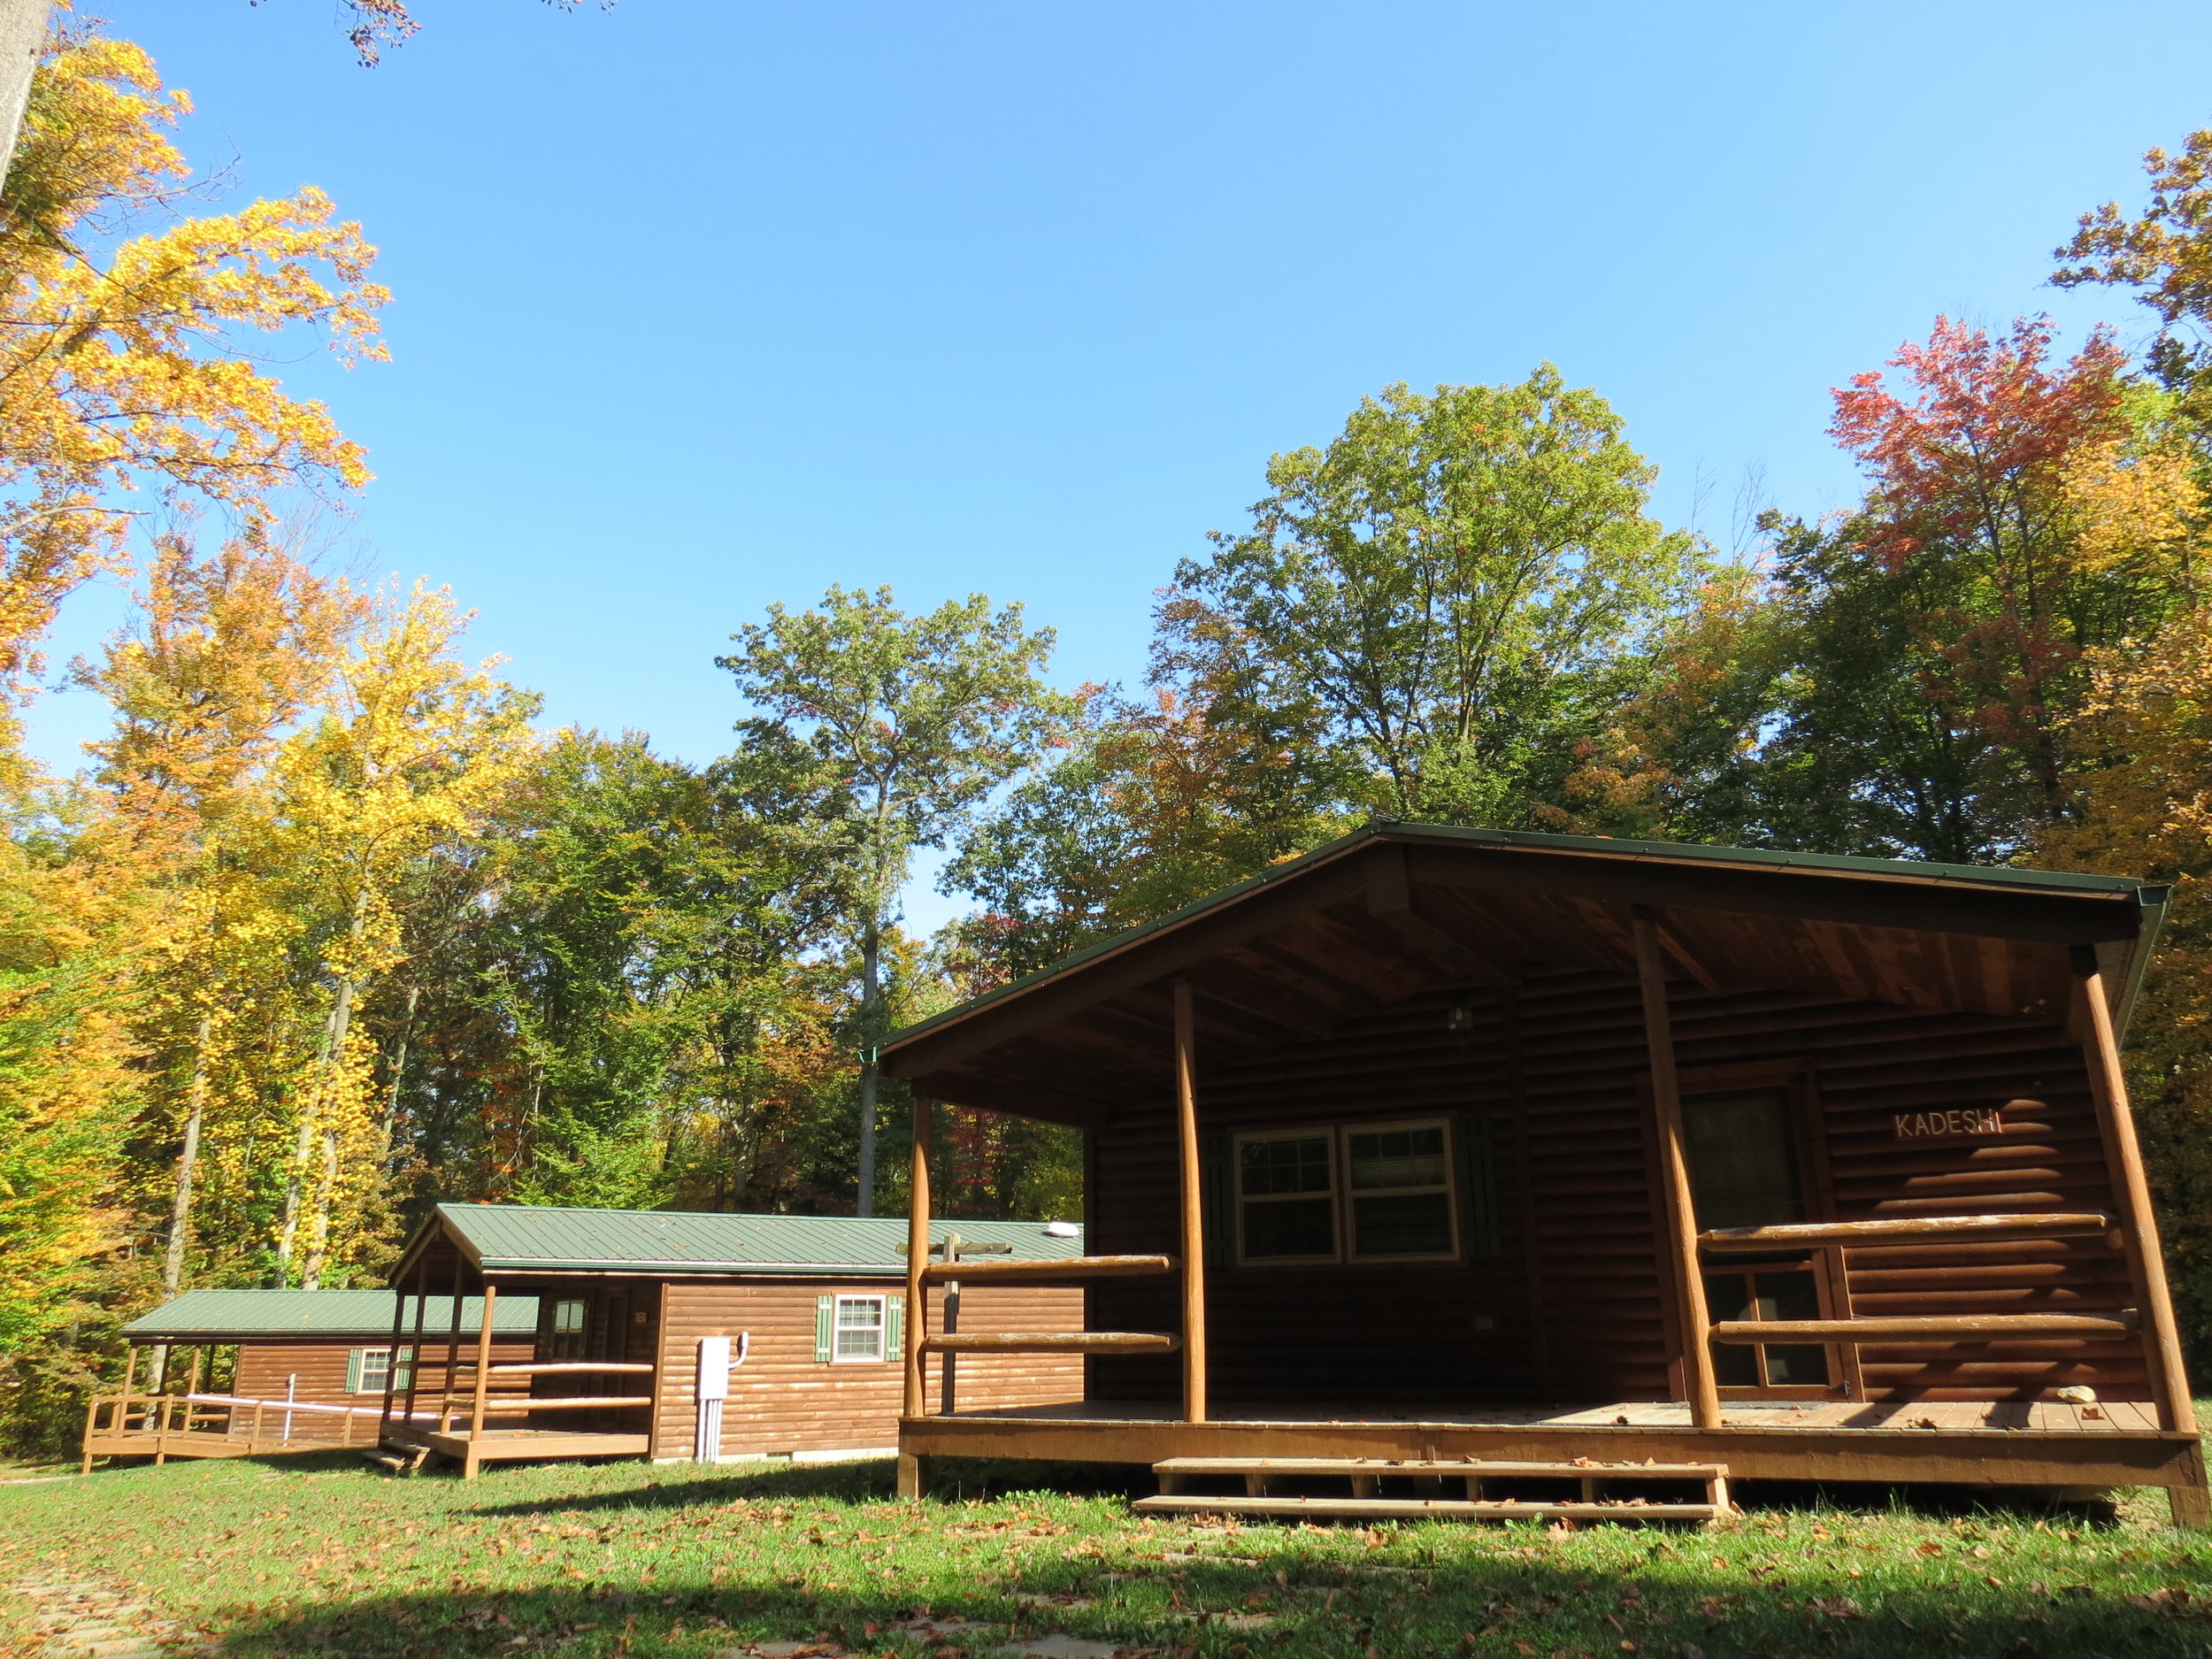 Log-Cabins-Fall-10-19-2016-01.JPG